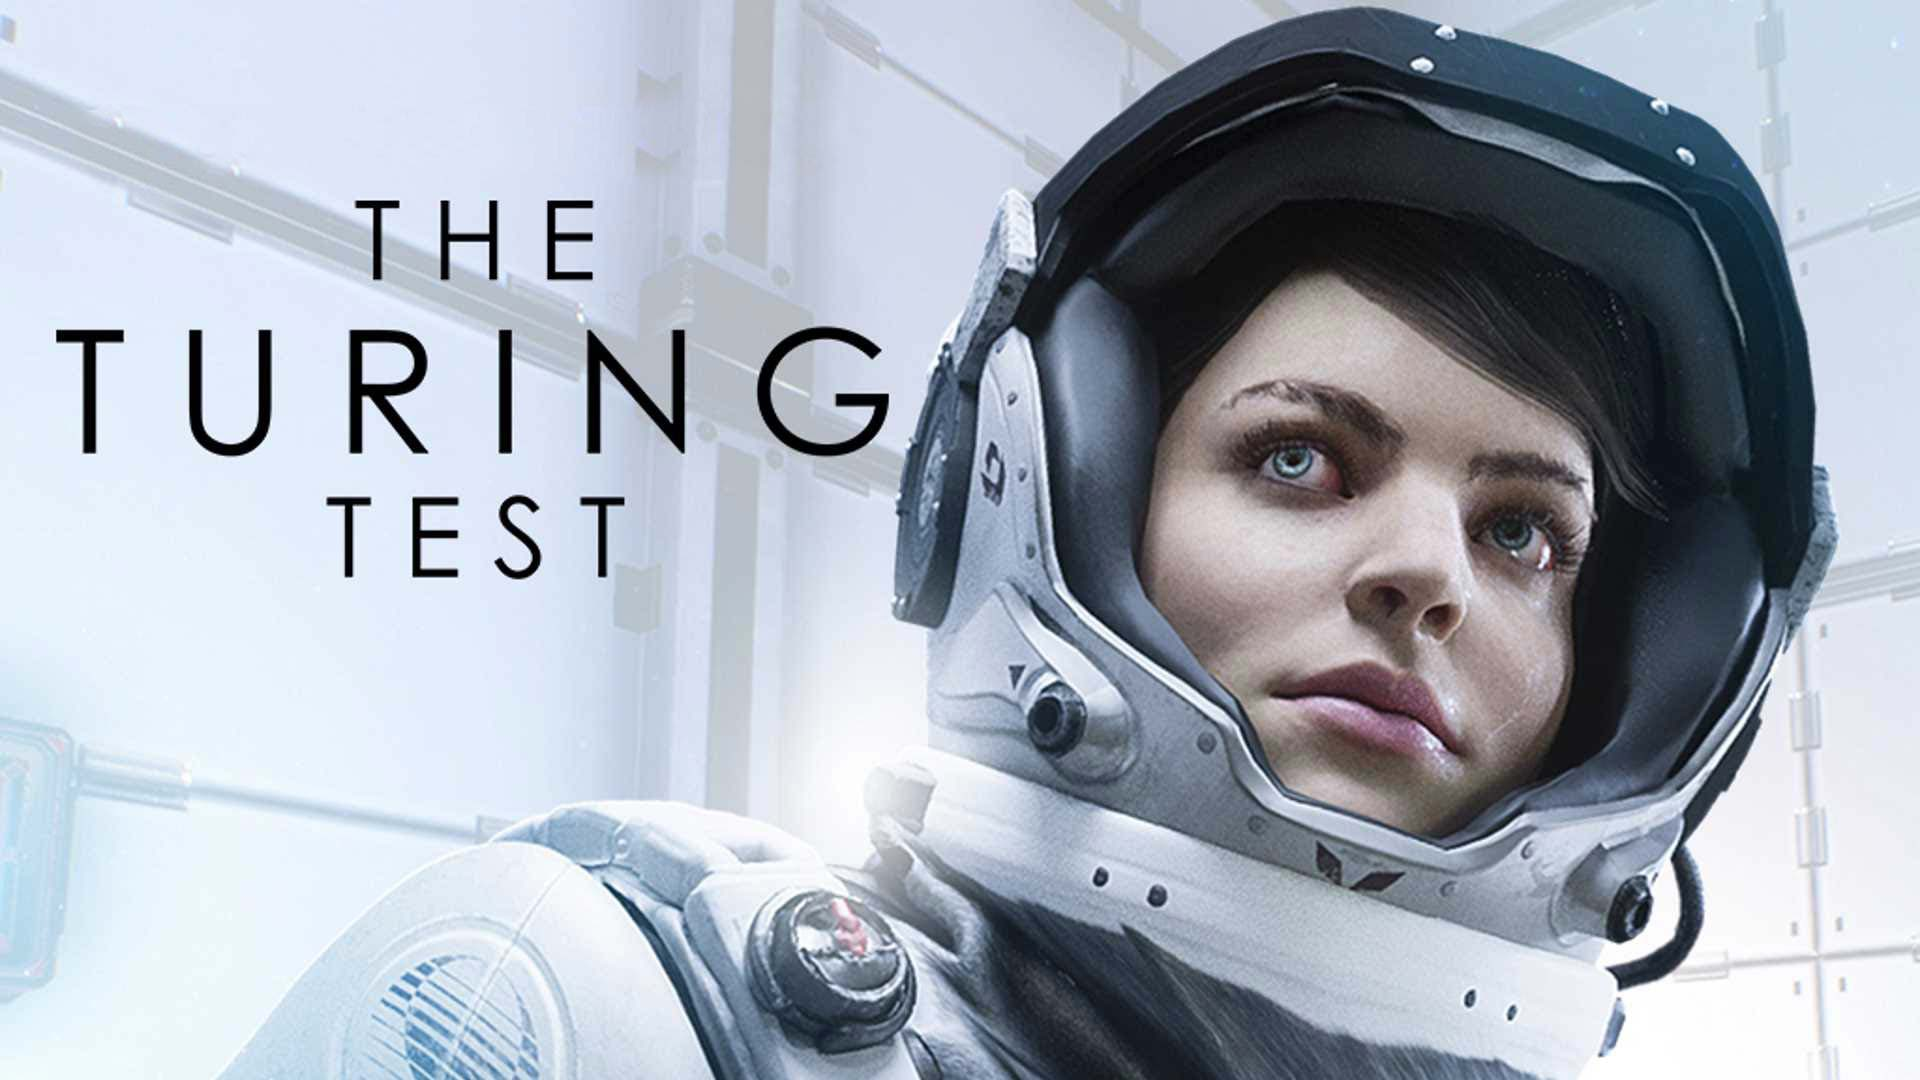 The Turing Test Video